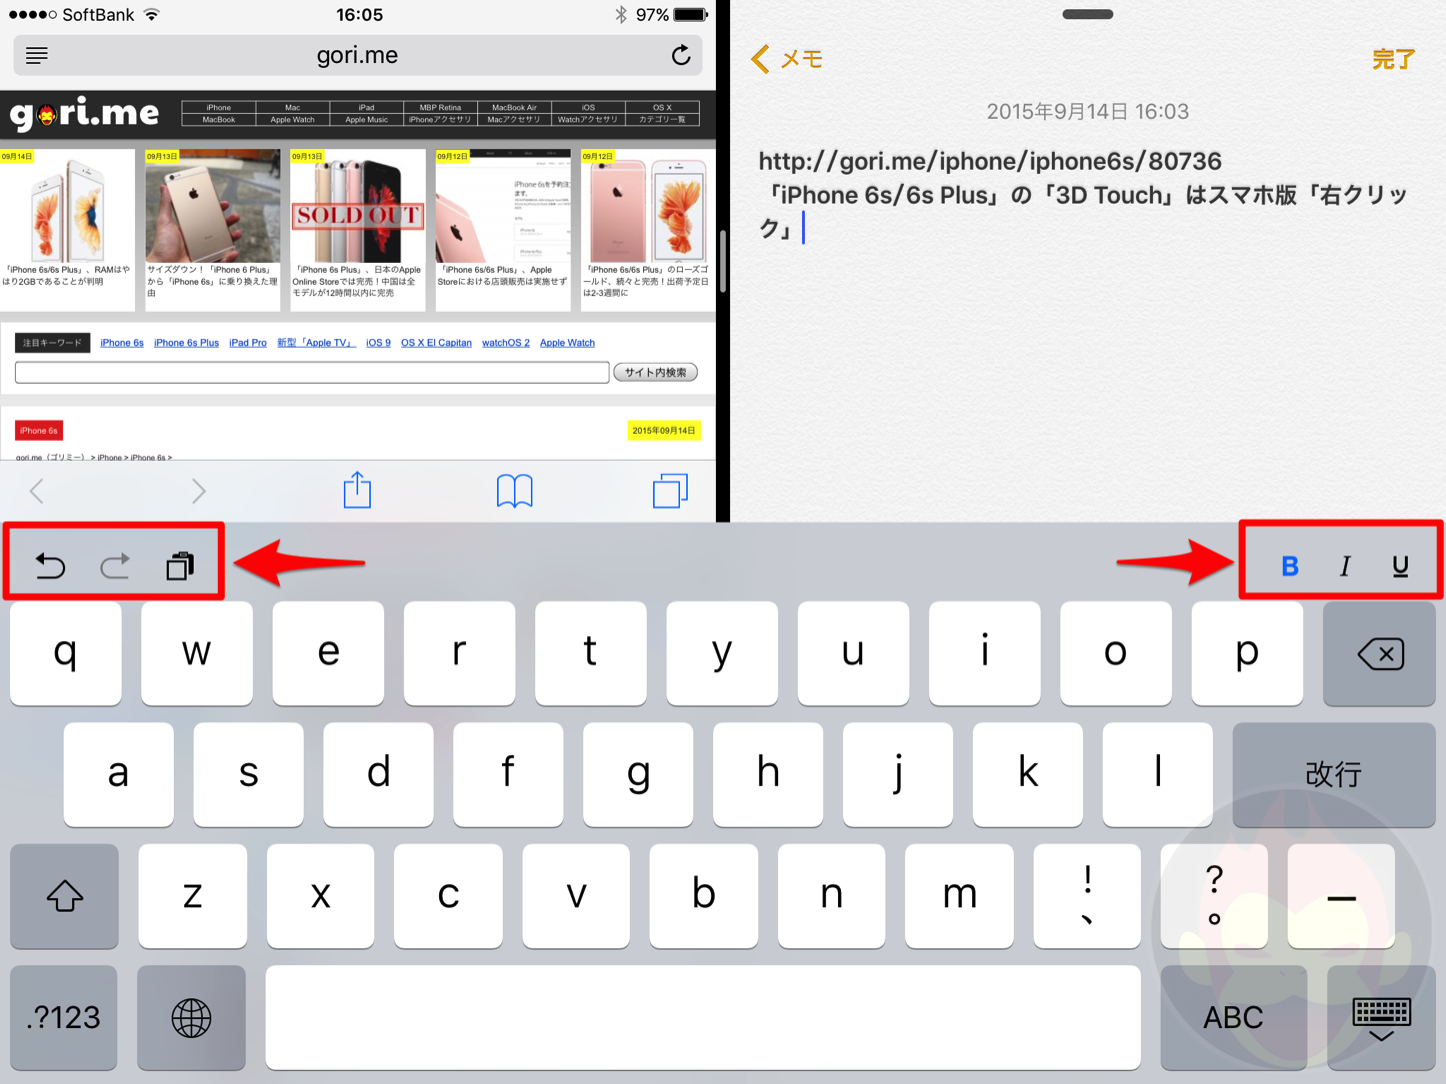 IOS 9 iPad Keyboard Shortcuts